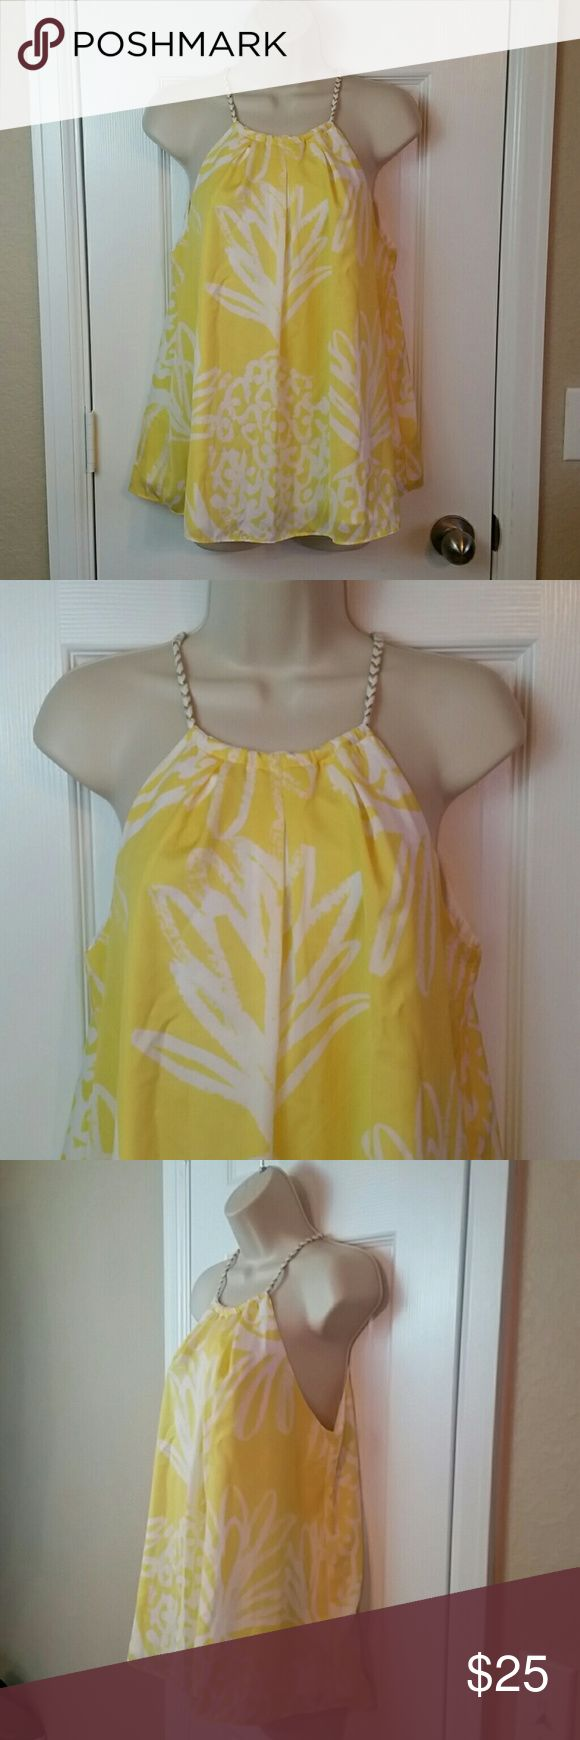 """Lilly Pulitzer Pineapple Punch sleeveless top Pit to pit 17"""" Length 25""""  Lilly Pulitzer for Target  Pineapple punch design in yellow Lilly Pulitzer for Target Tops Blouses"""